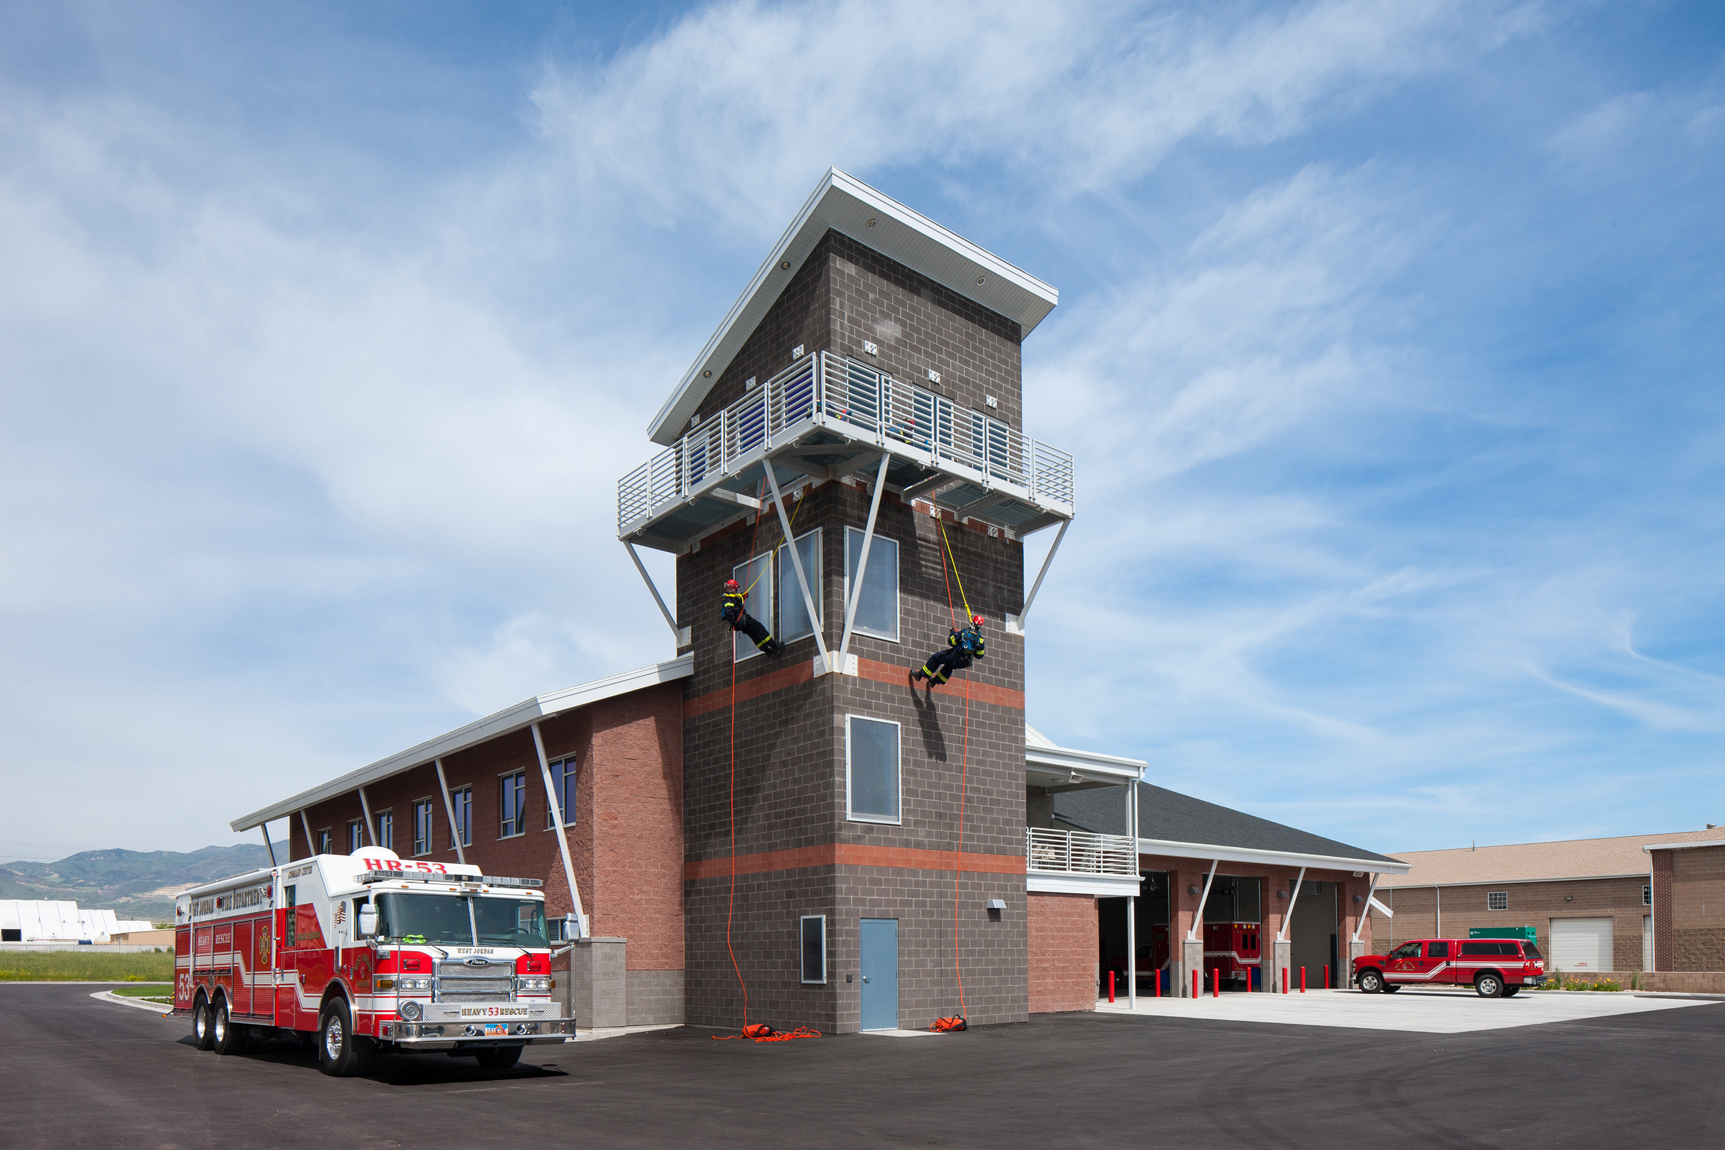 Exterior view of fire station with fire men rapelling from tower.